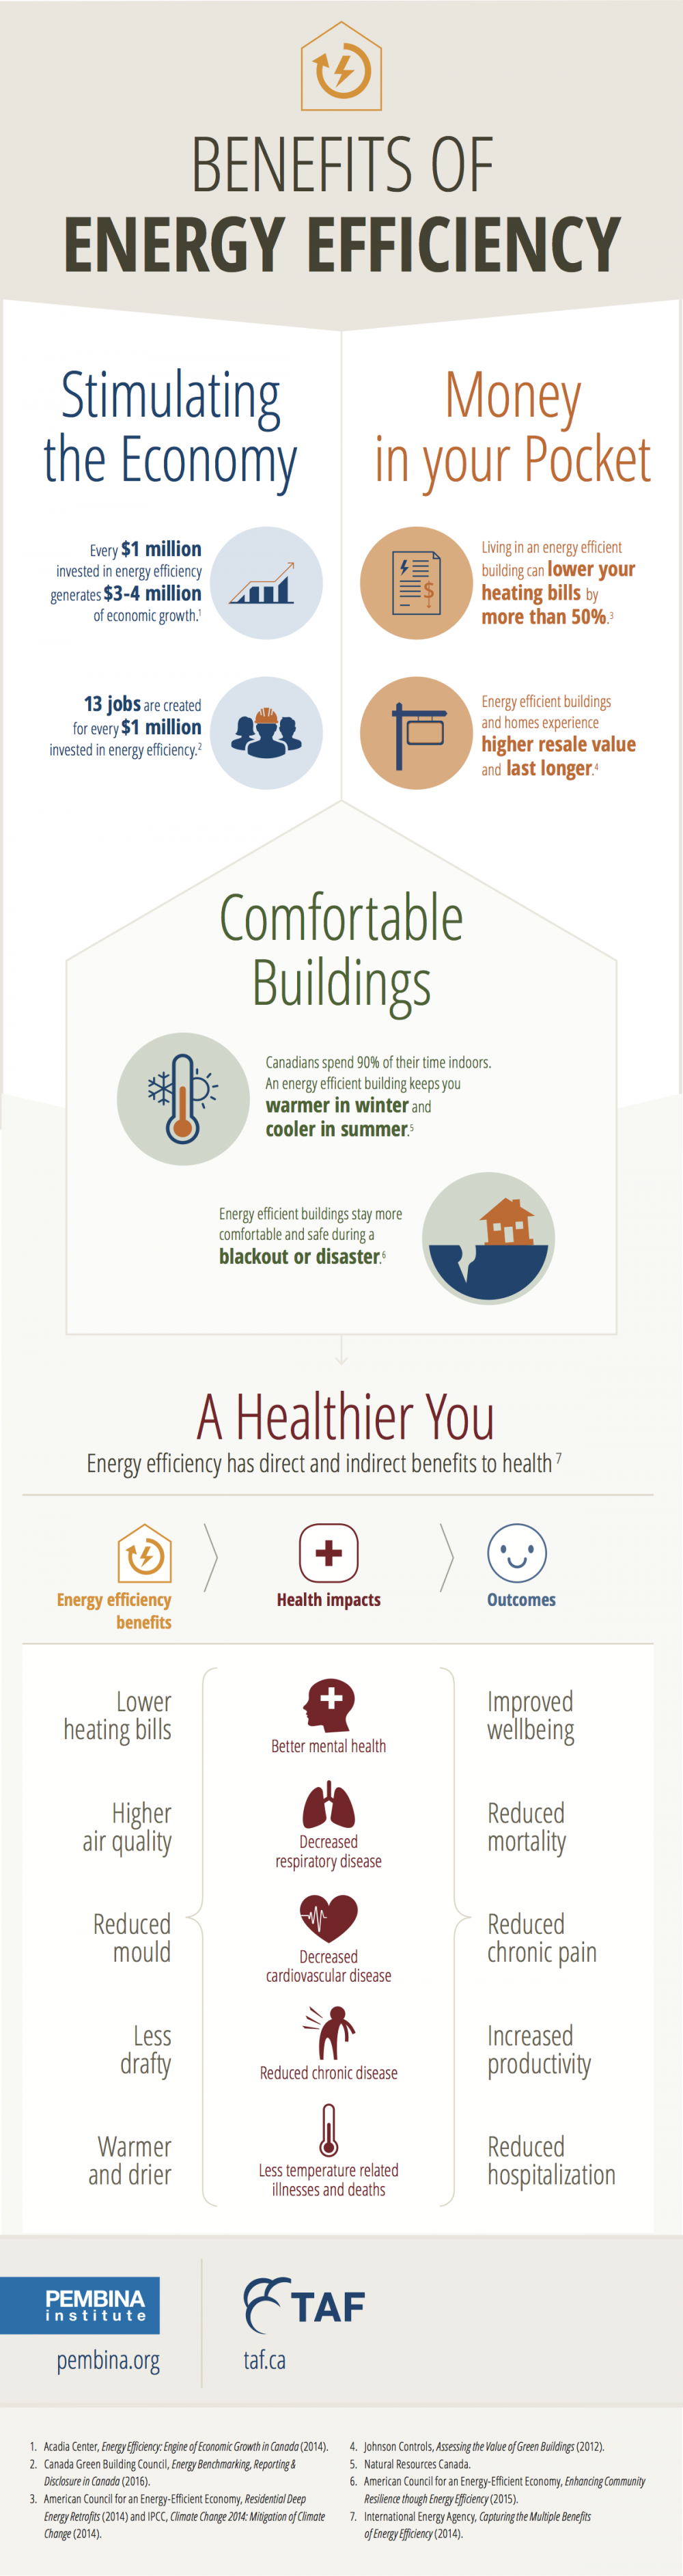 energy-efficiency-infographic-2017.png